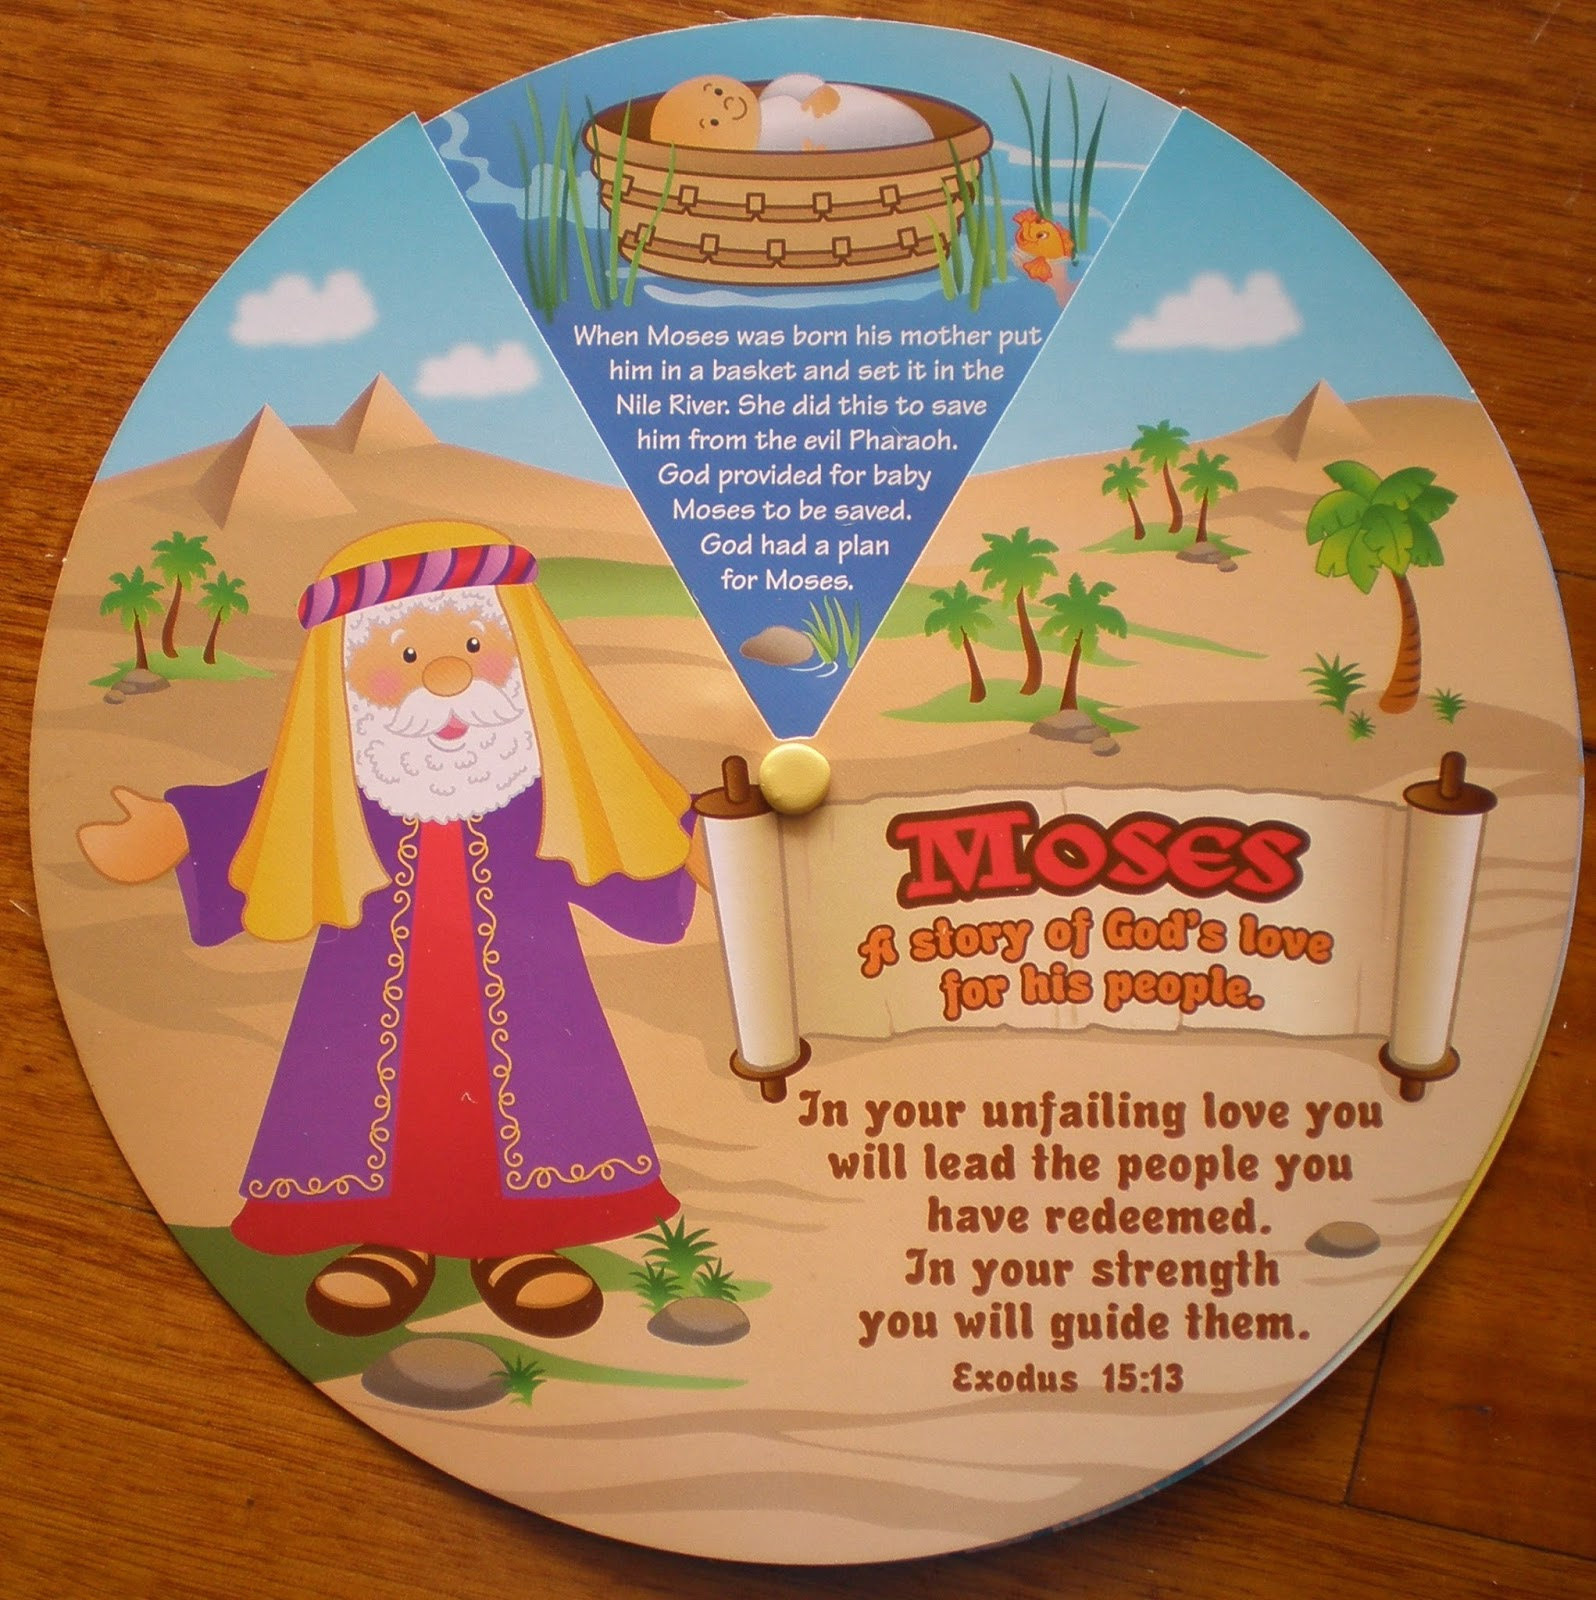 petersham bible book u0026 tract depot moses learning wheel